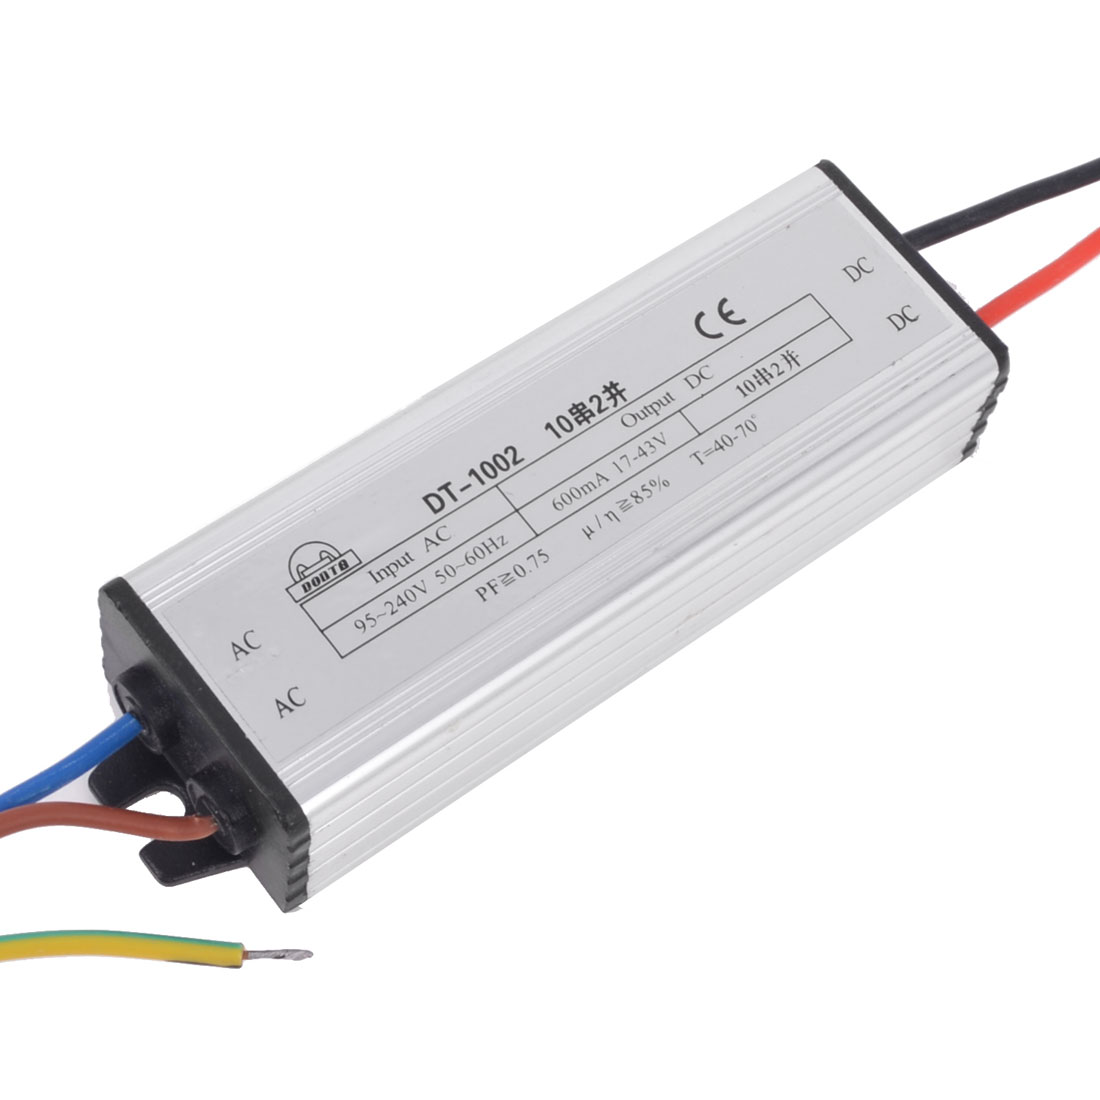 AC 95-240V to DC 17-43V Waterproof LED Driver Transformer Adapter 20W